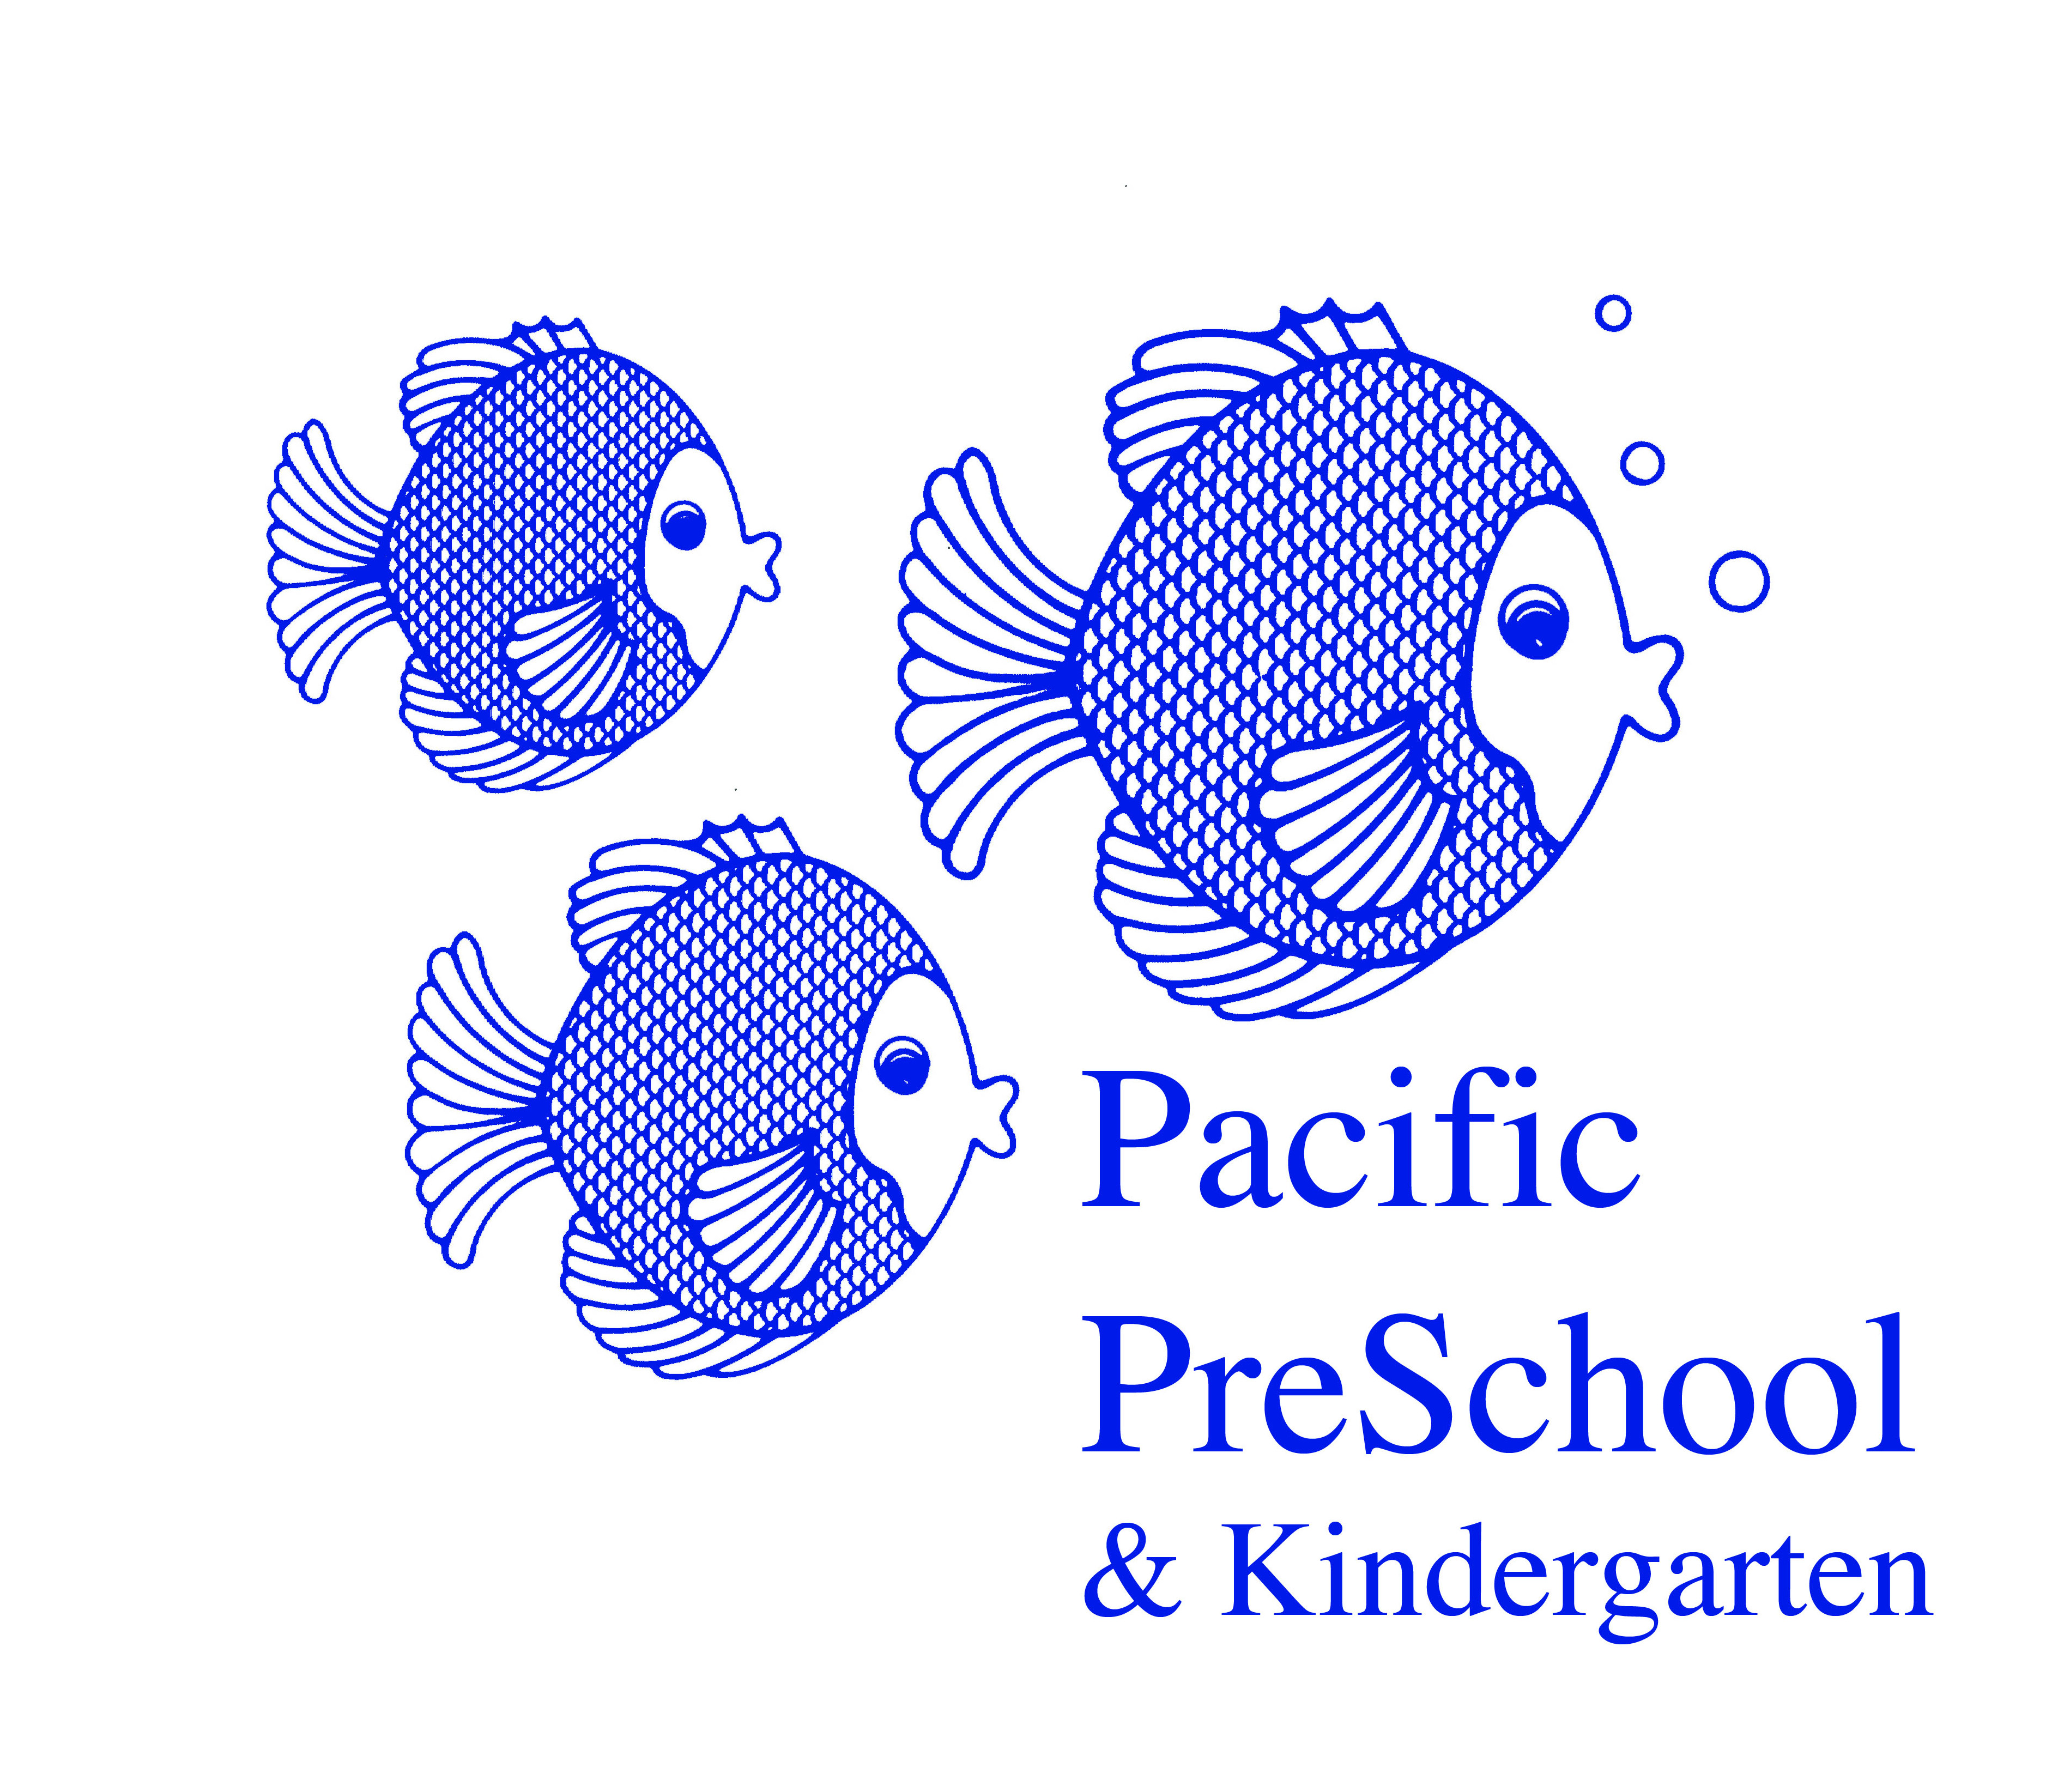 Pacific Preschool and Kindergarten